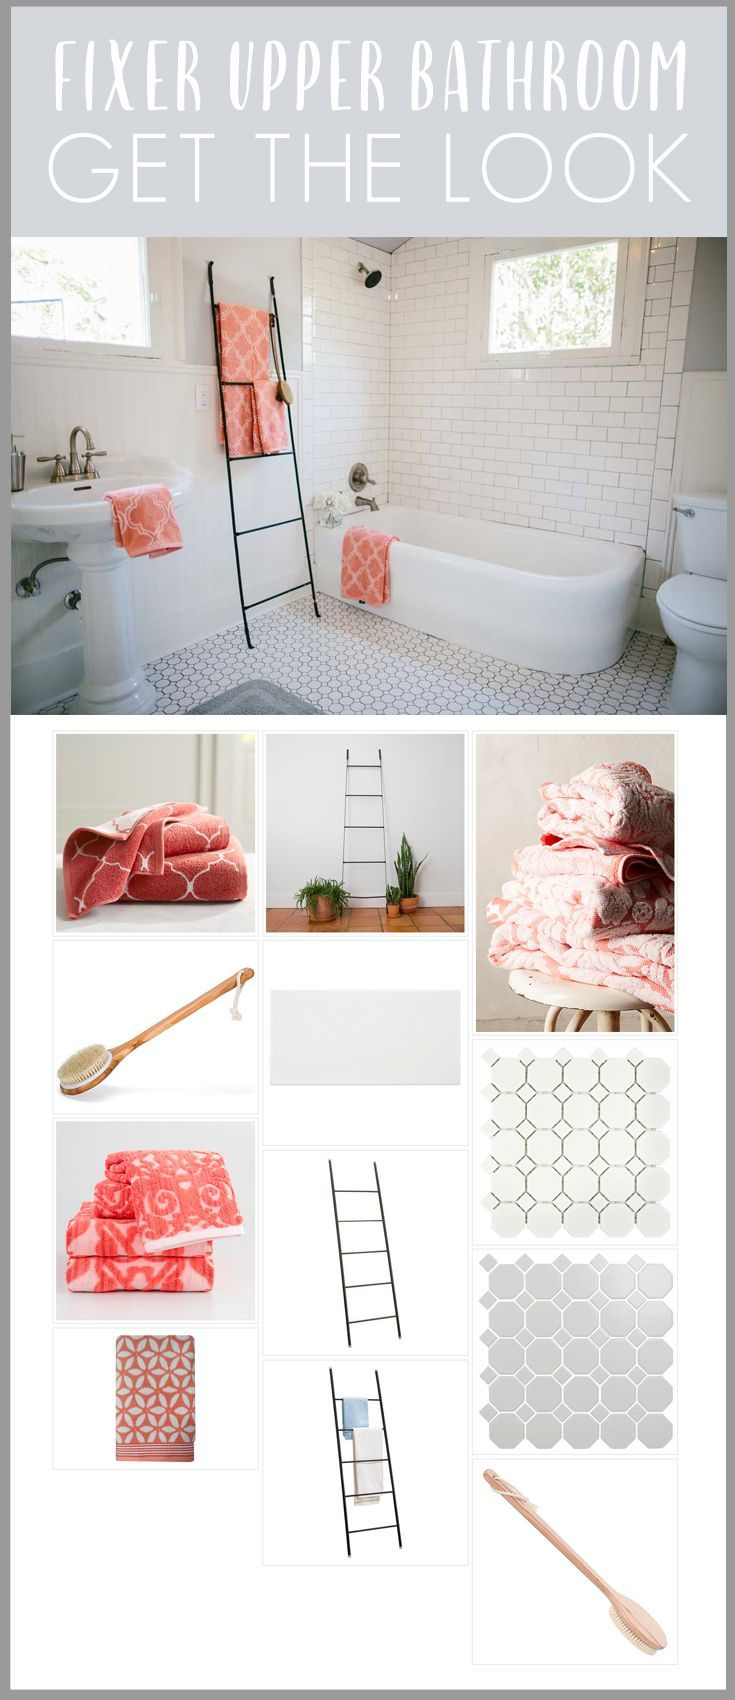 Fixer Upper Season 1 Episode 12 Bathroom room recreation! Full list of decor sources for the 5th Street Story!